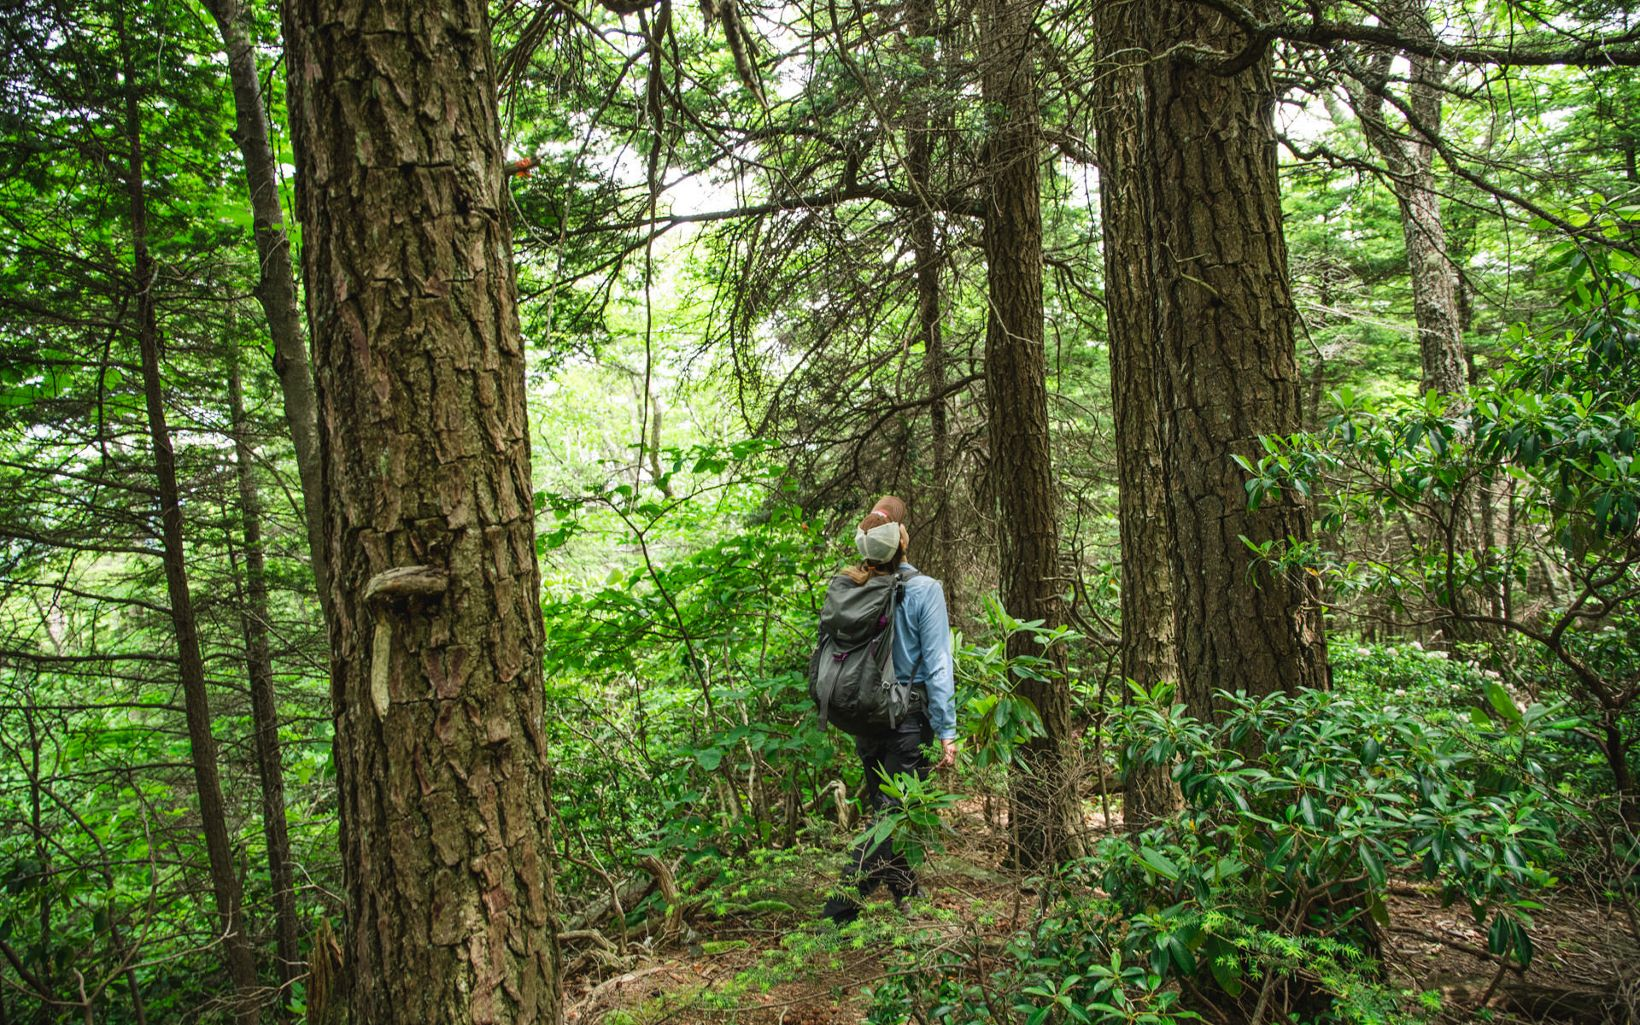 Woman hiking through a forest.